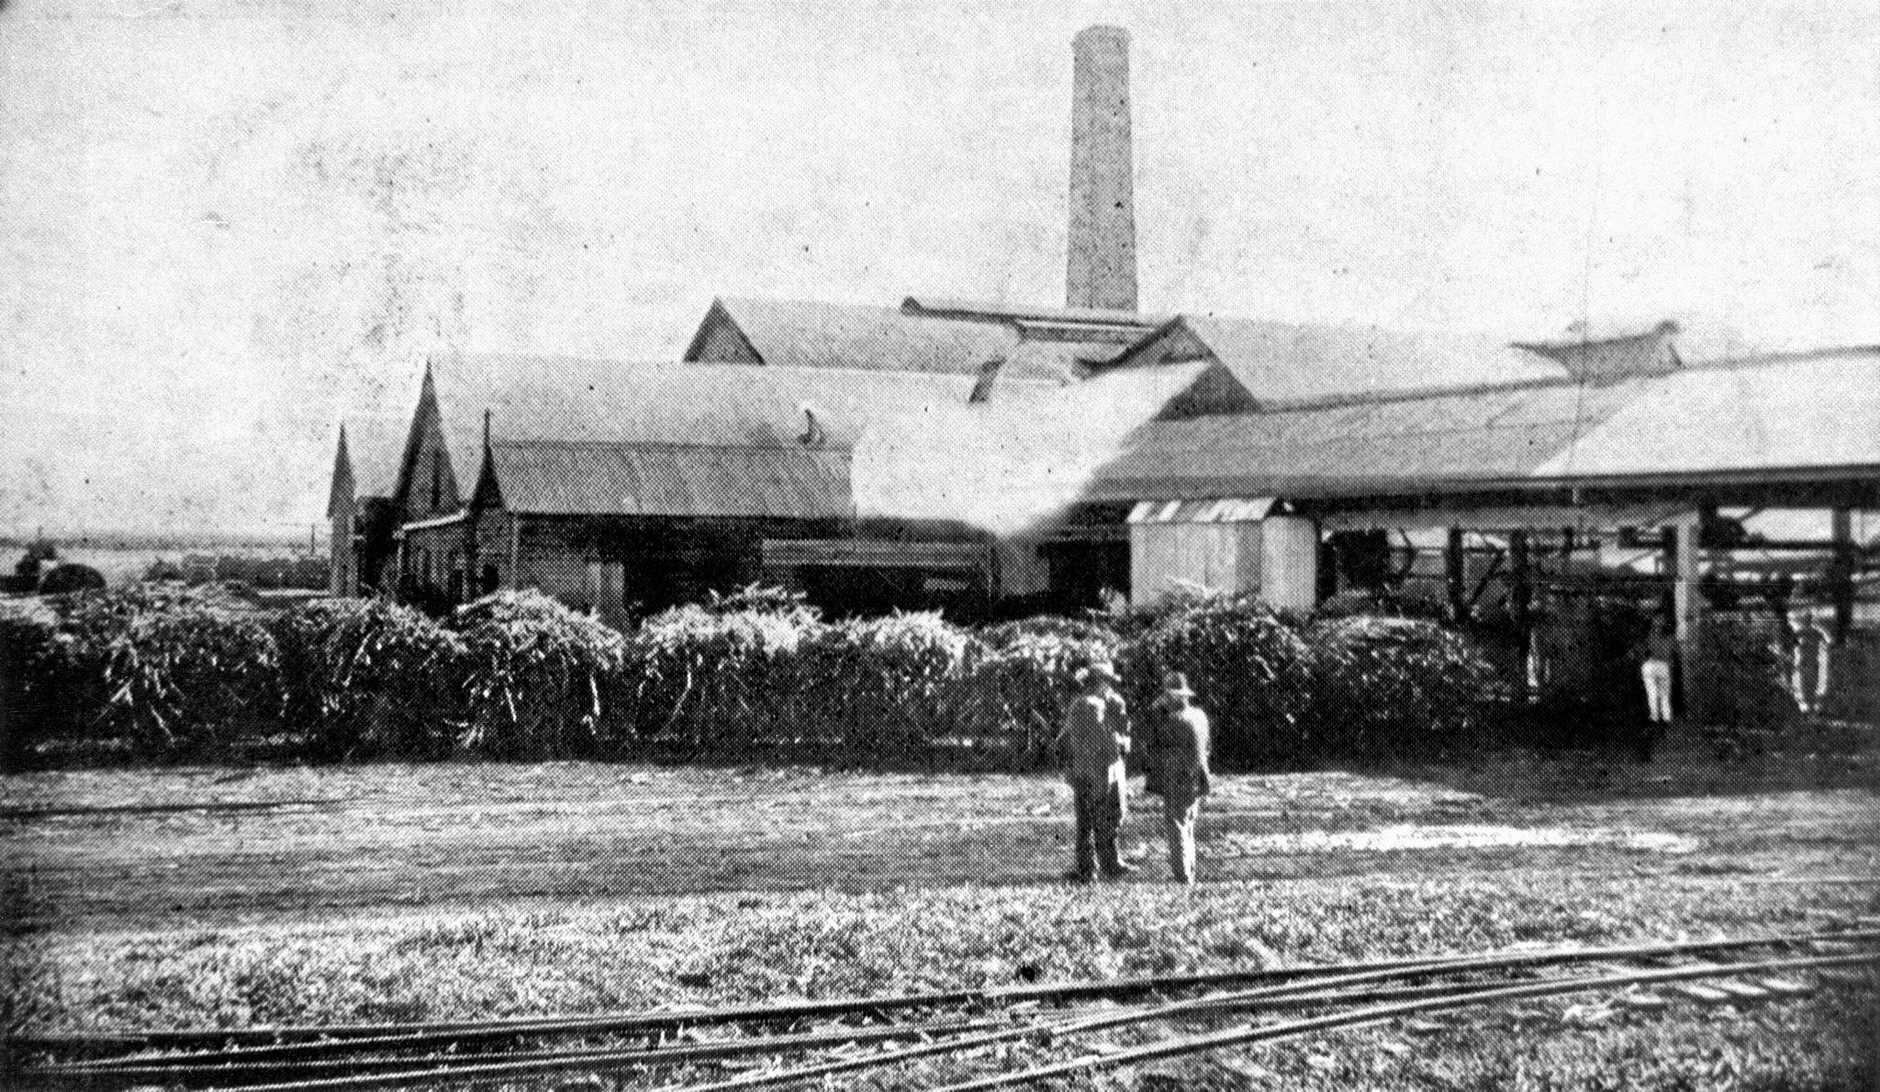 HISTORY: Qunaba Mill, circa 1928, was established by Augustus Barton in 1884 and originally called Mon Repos Mill.